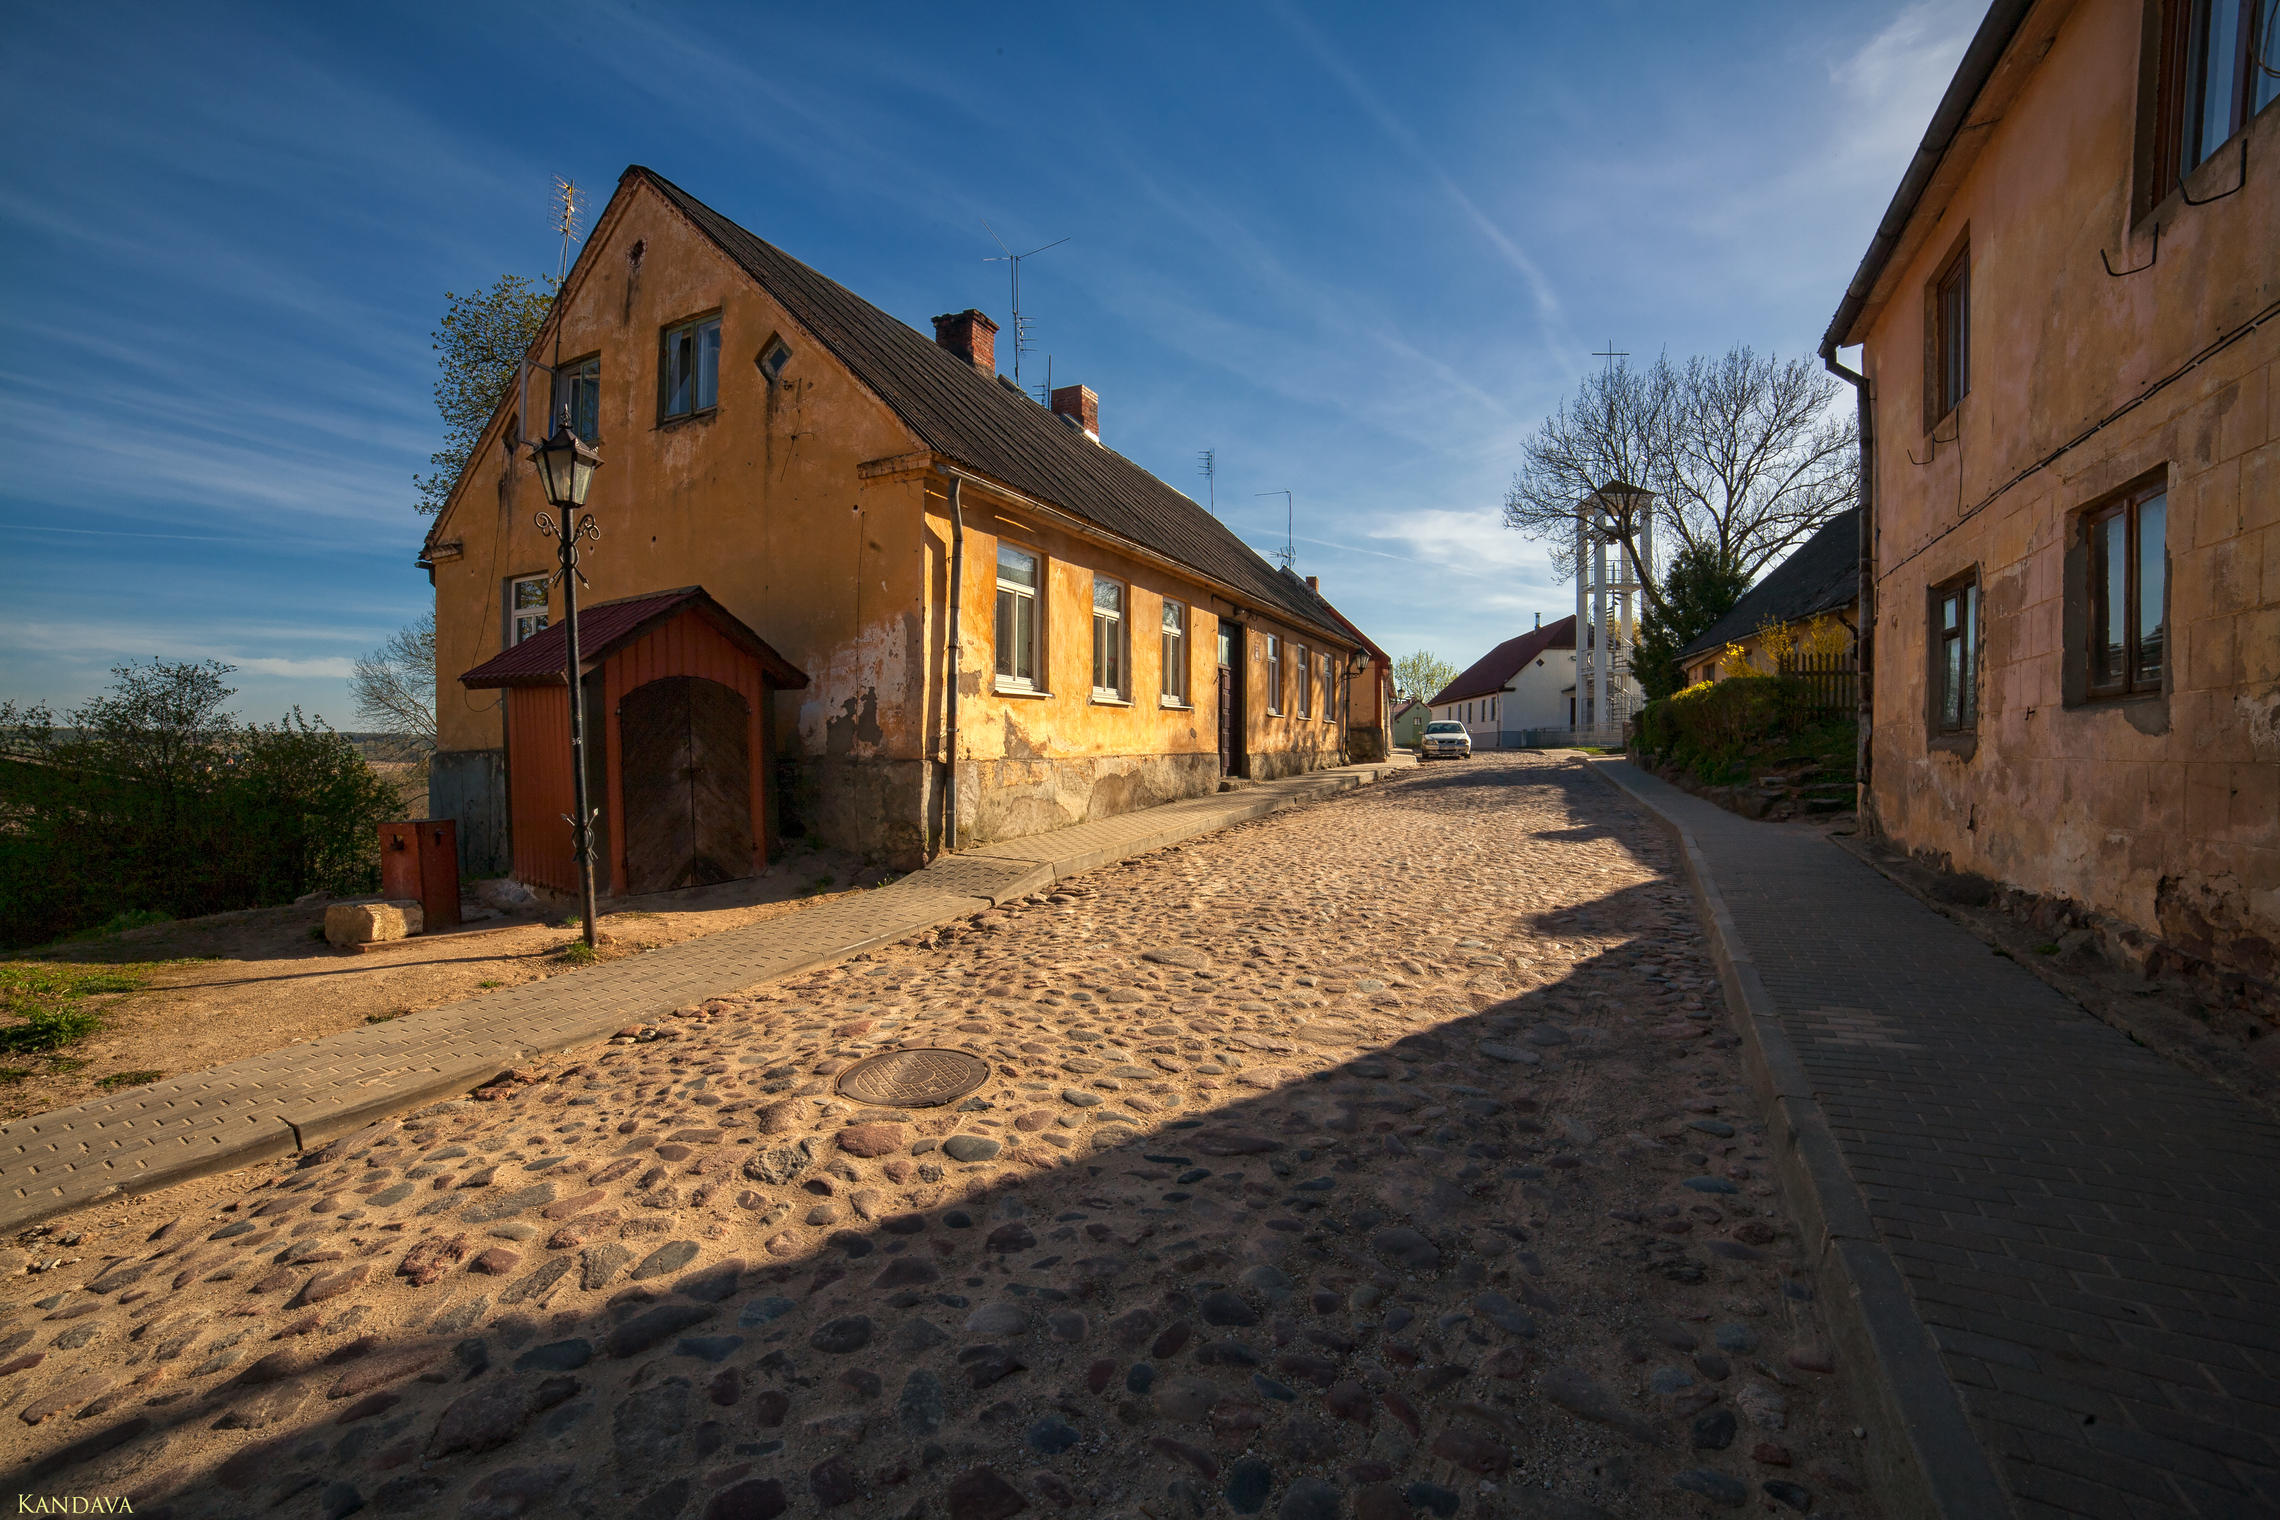 Kandava, small Latvian city